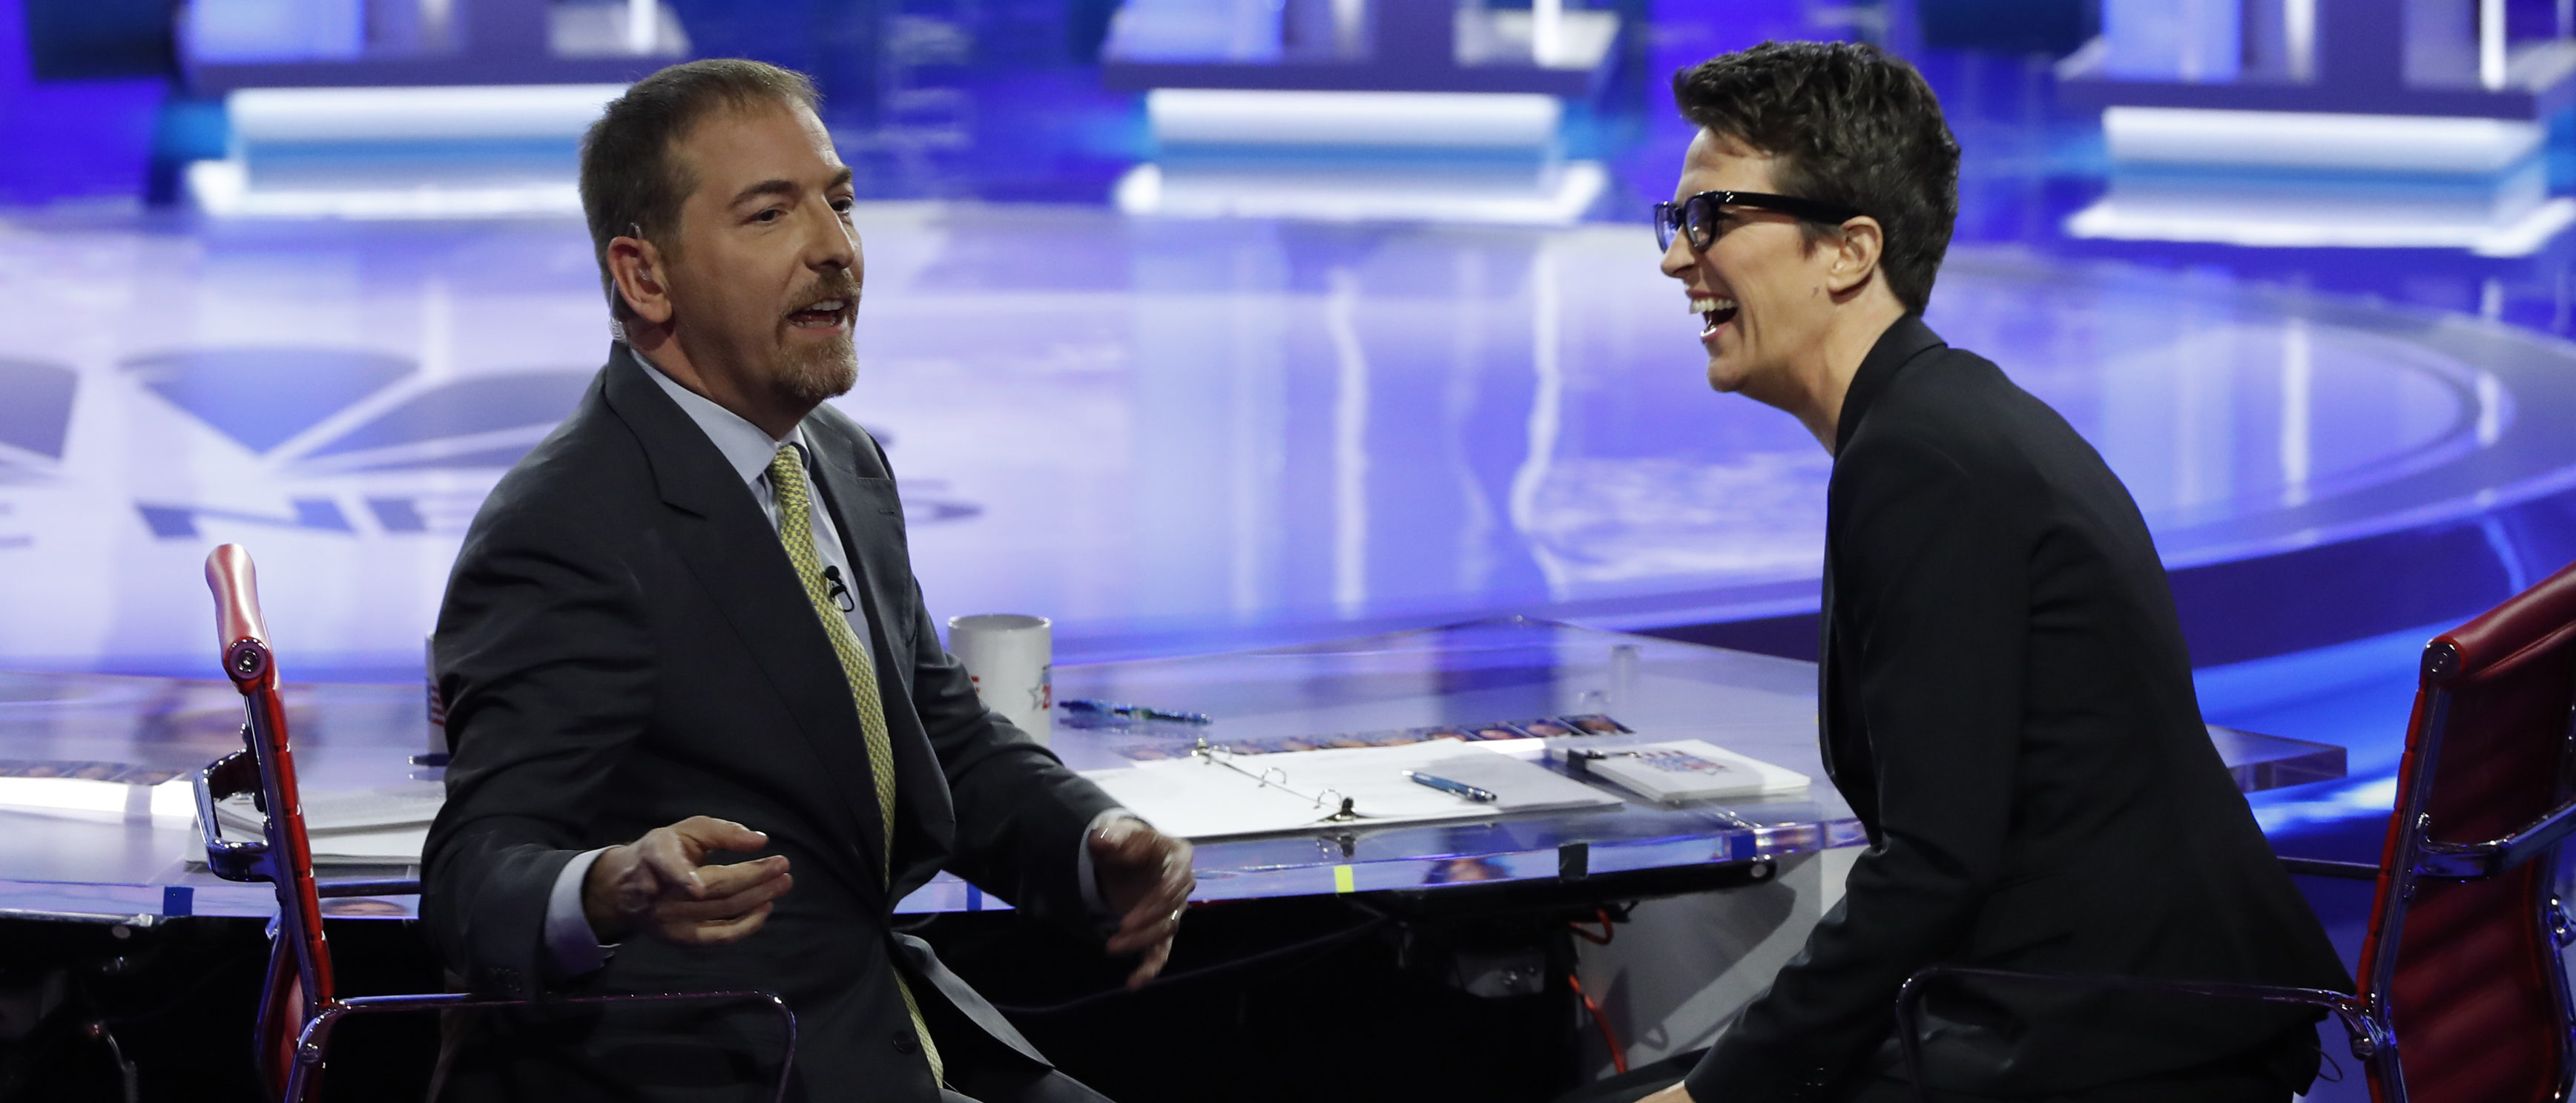 MSNBC debate moderators Chuck Todd and Rachel Maddow speak to the audience during the first U.S. 2020 presidential election Democratic candidates debate in Miami, Florida, U.S., June 26, 2019. REUTERS/Mike Segar